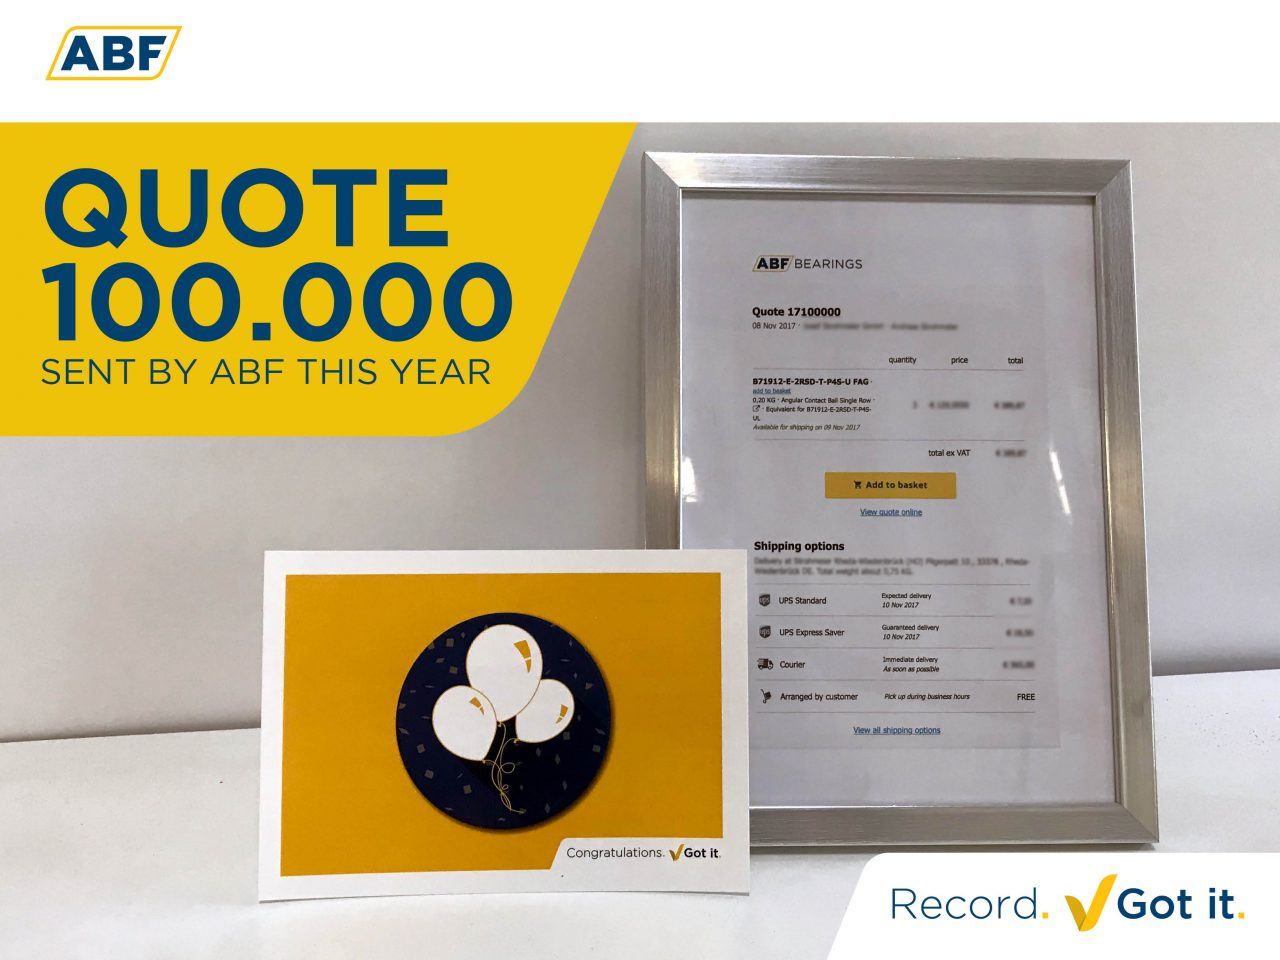 A new milestone for ABF. We just did it ‒ sent our 100,000 quote